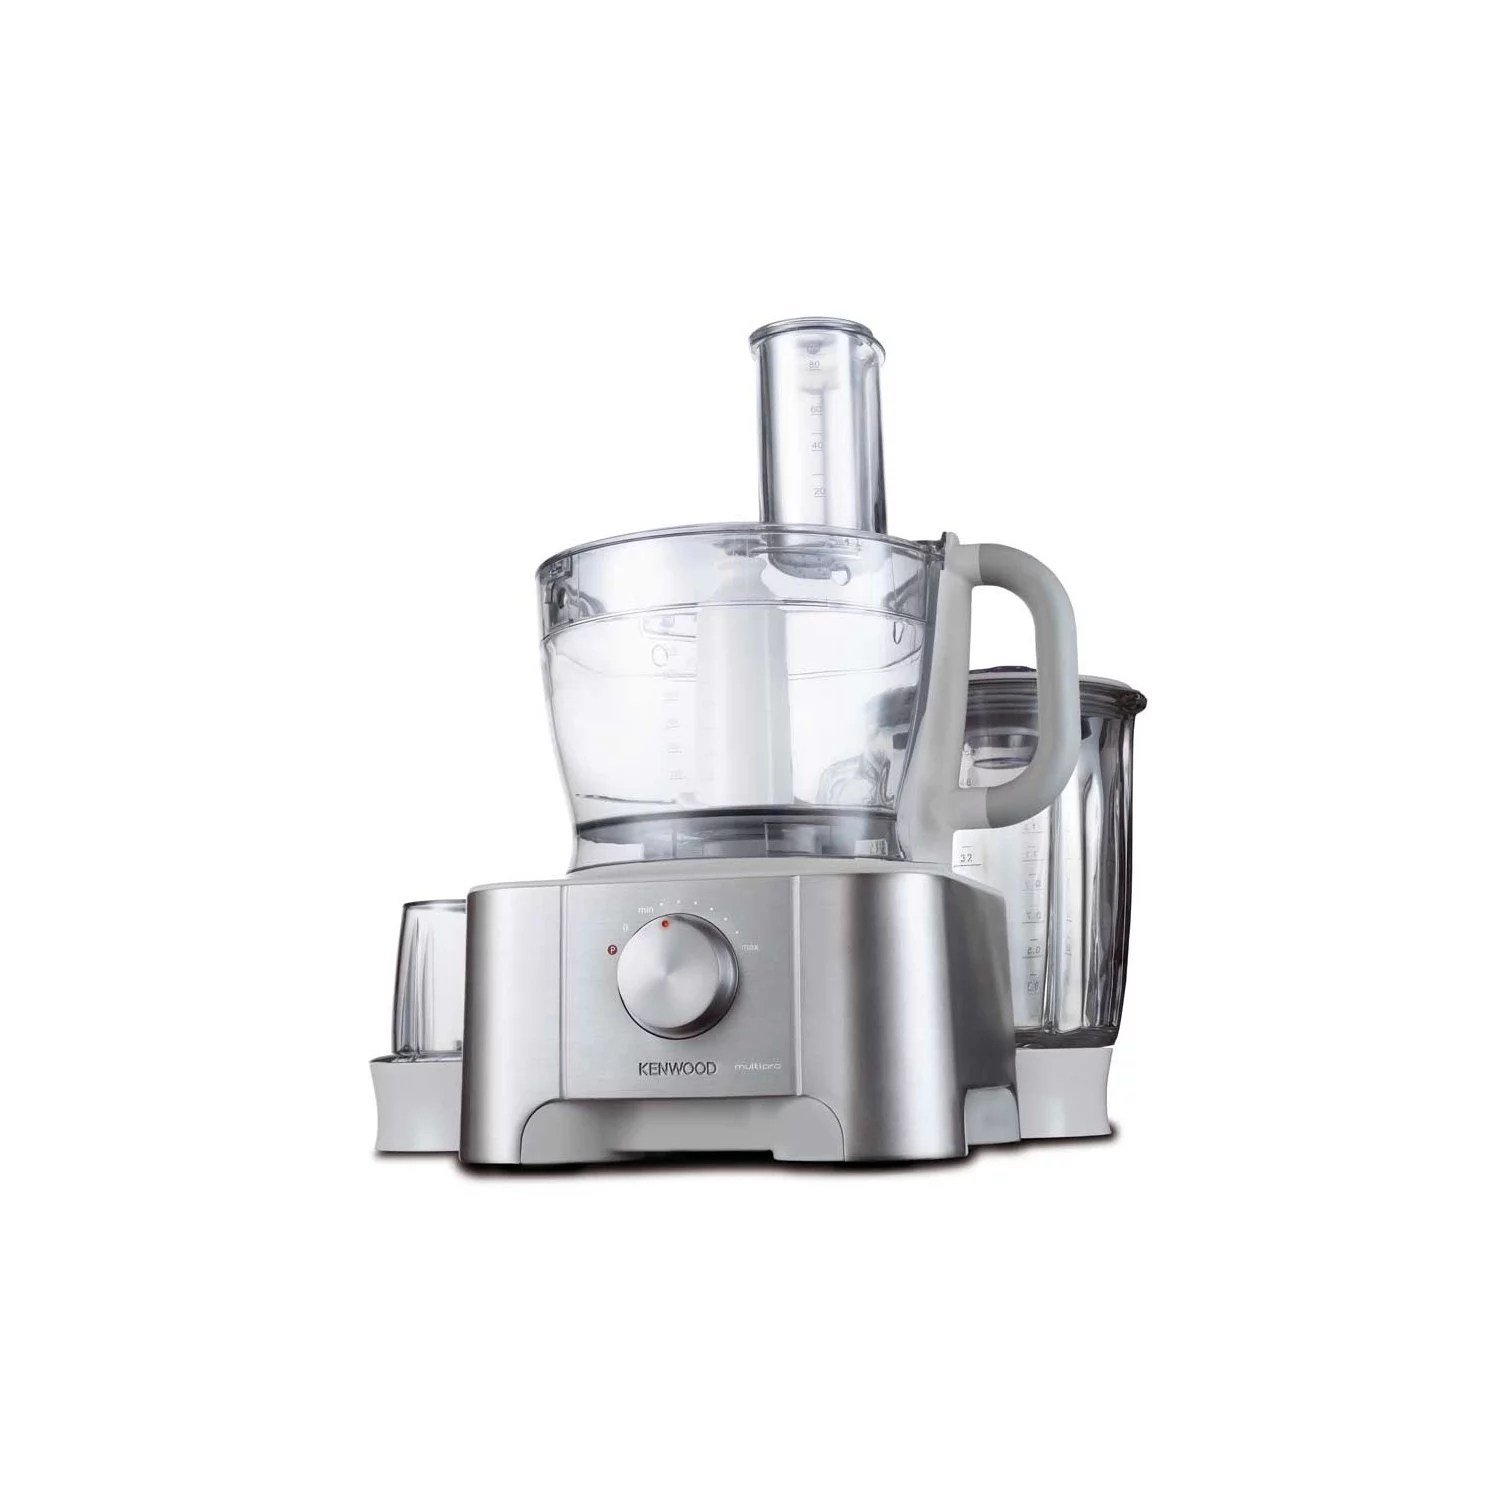 Kenwood Food Processor Compact Kenwood Food Processor Review